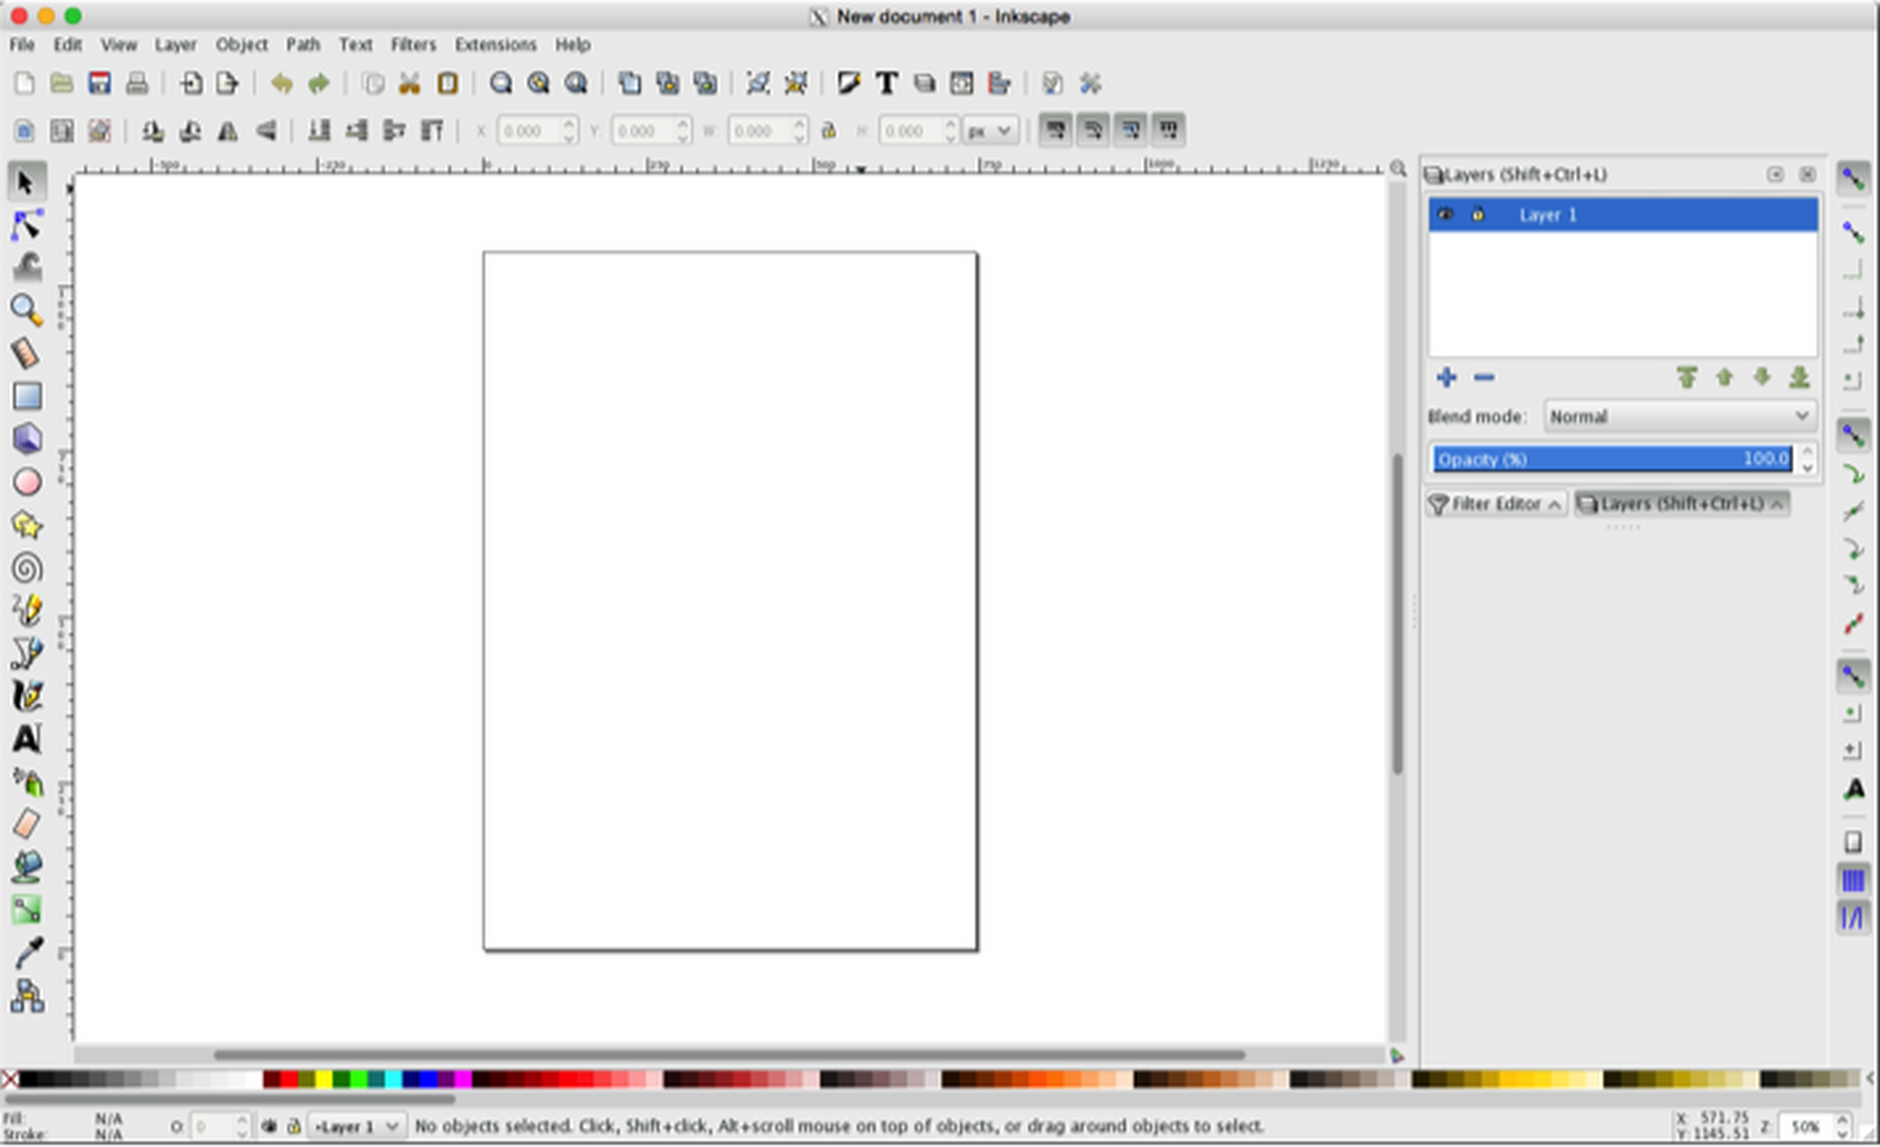 The initial screen in Inkscape